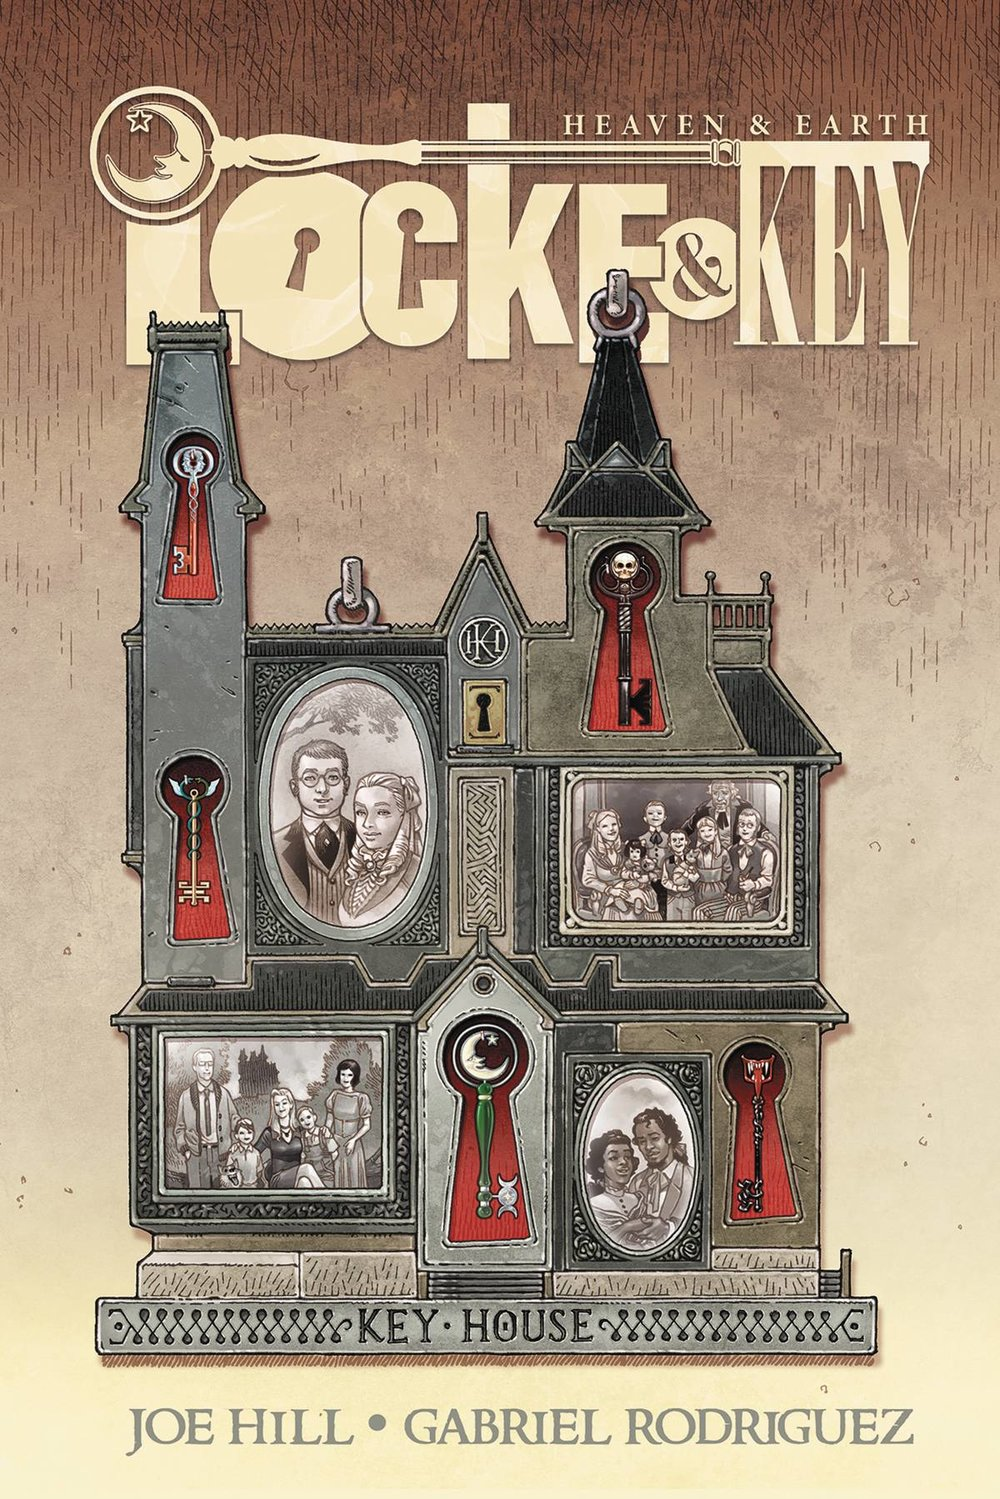 LOCKE & KEY HEAVEN & EARTH DLX HC ED.jpg